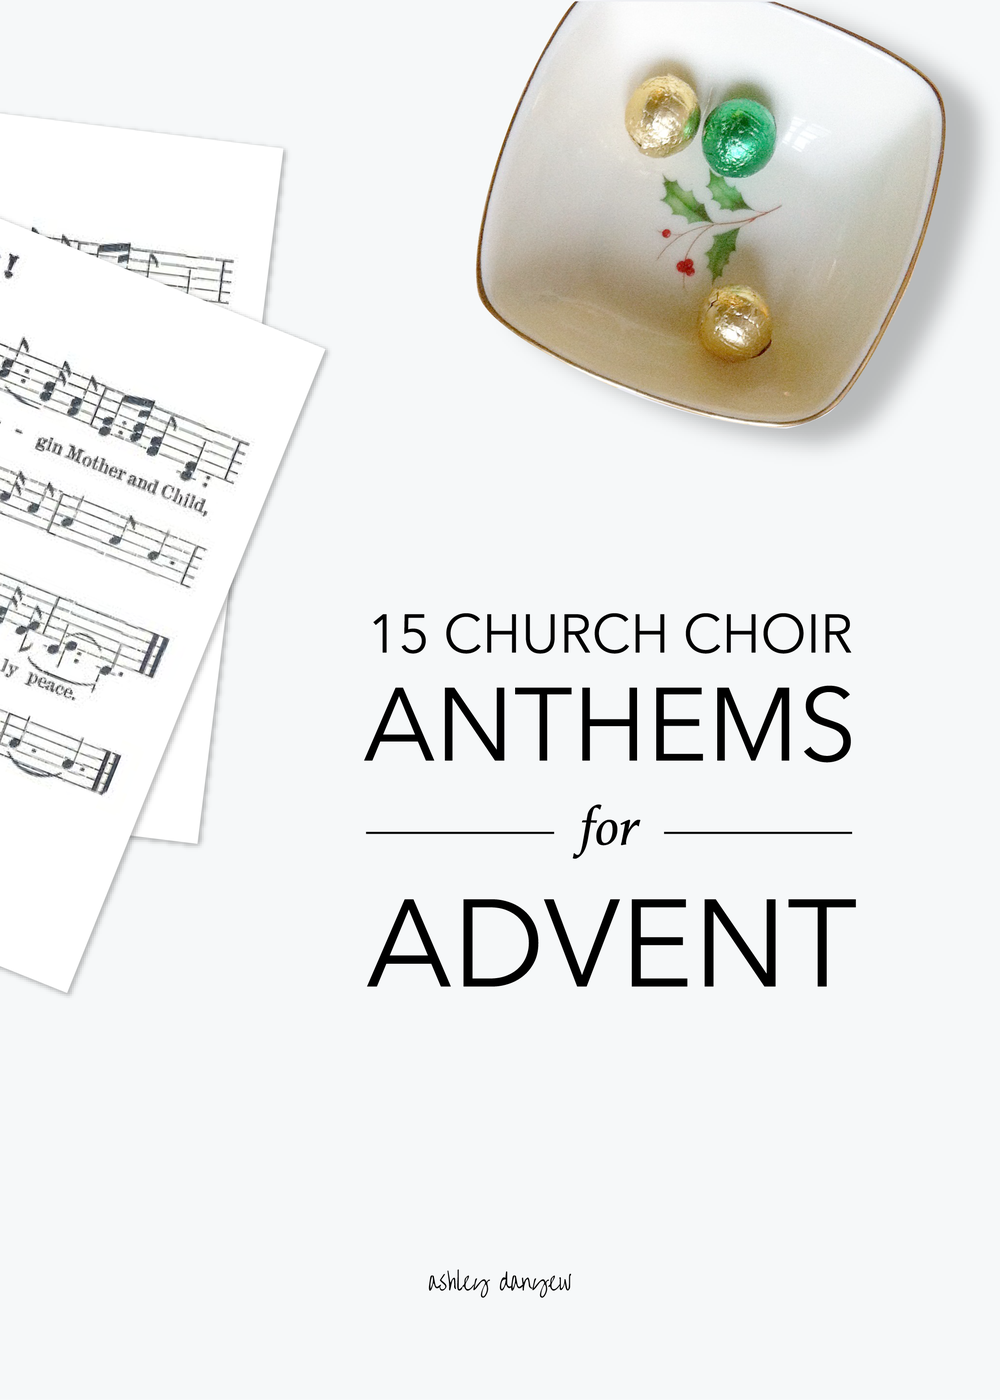 Fifteen-Church-Choir-Anthems-for-Advent-01.png